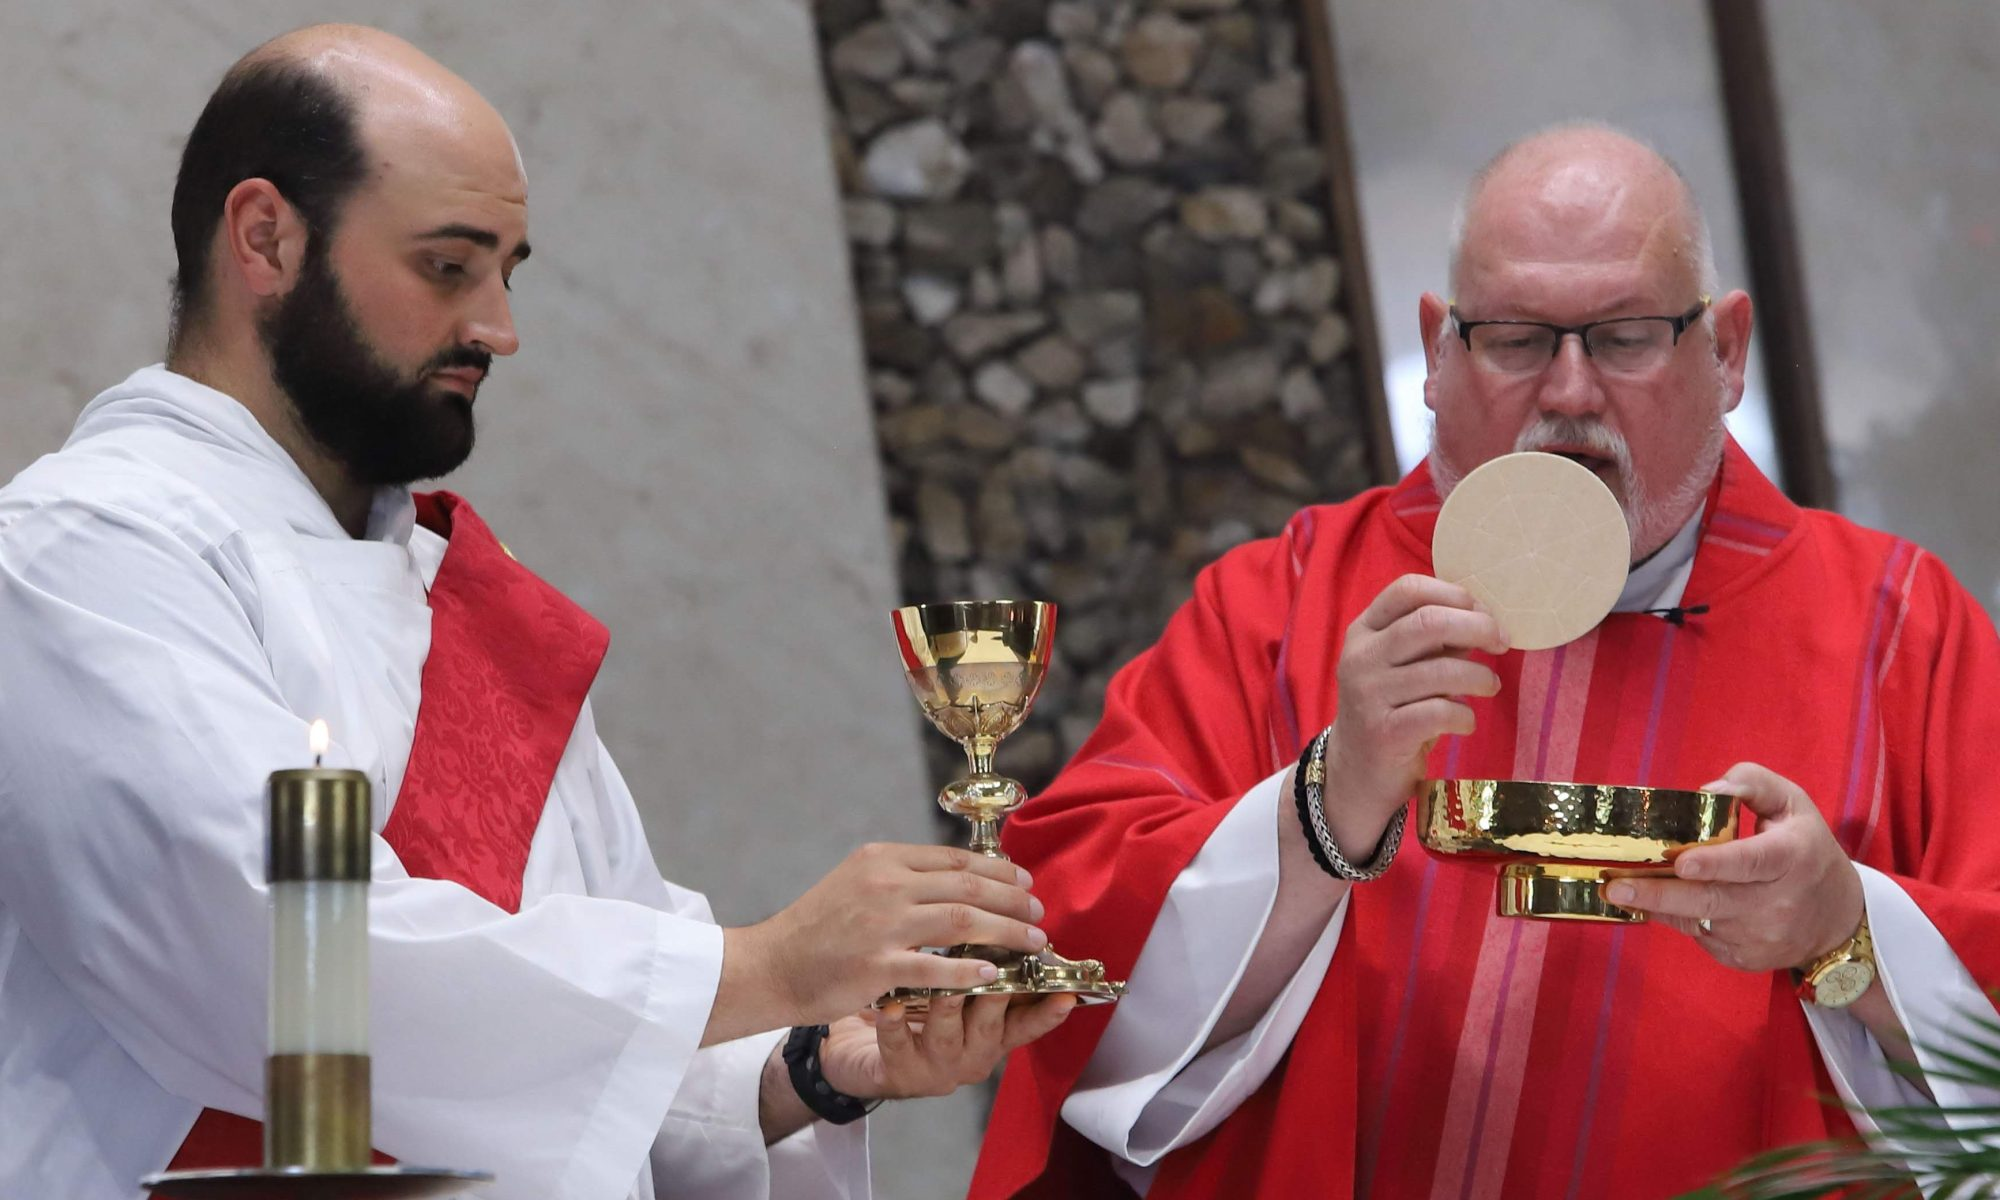 Fr. H Setter and Deacon Matt Siegman elevate the Eucharist.